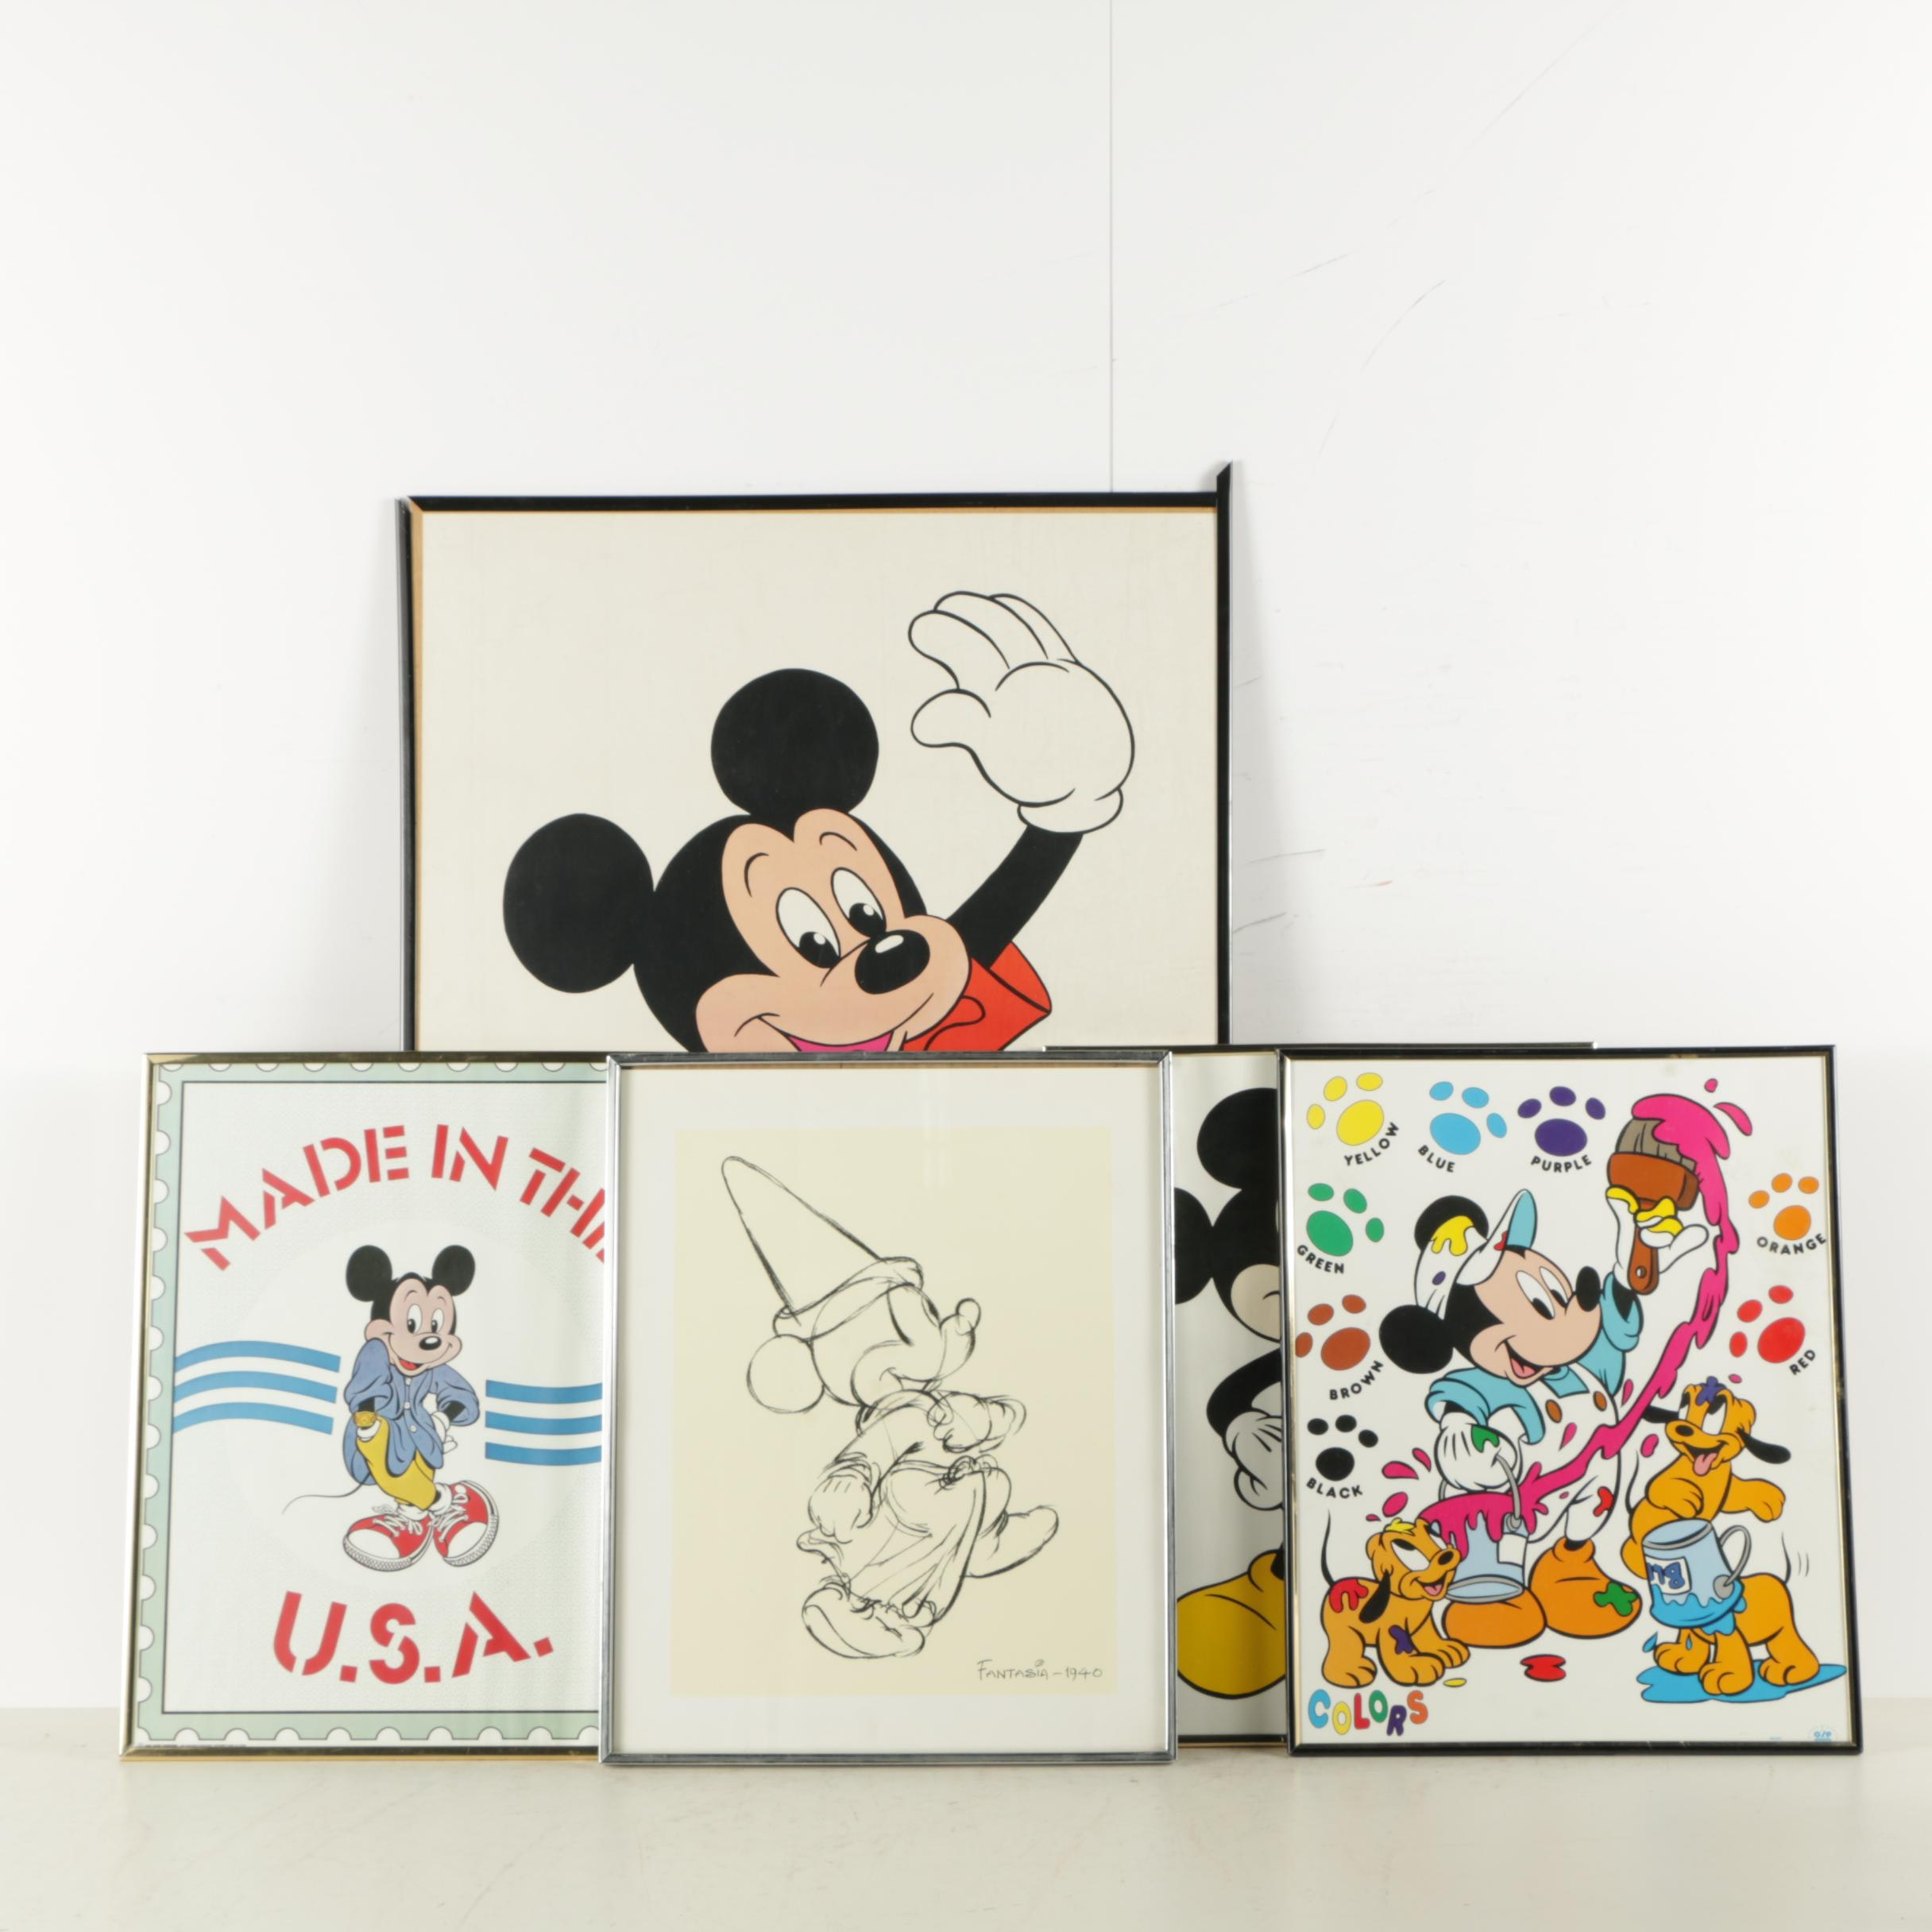 Reproduction Prints with a Serigraph of Mickey Mouse